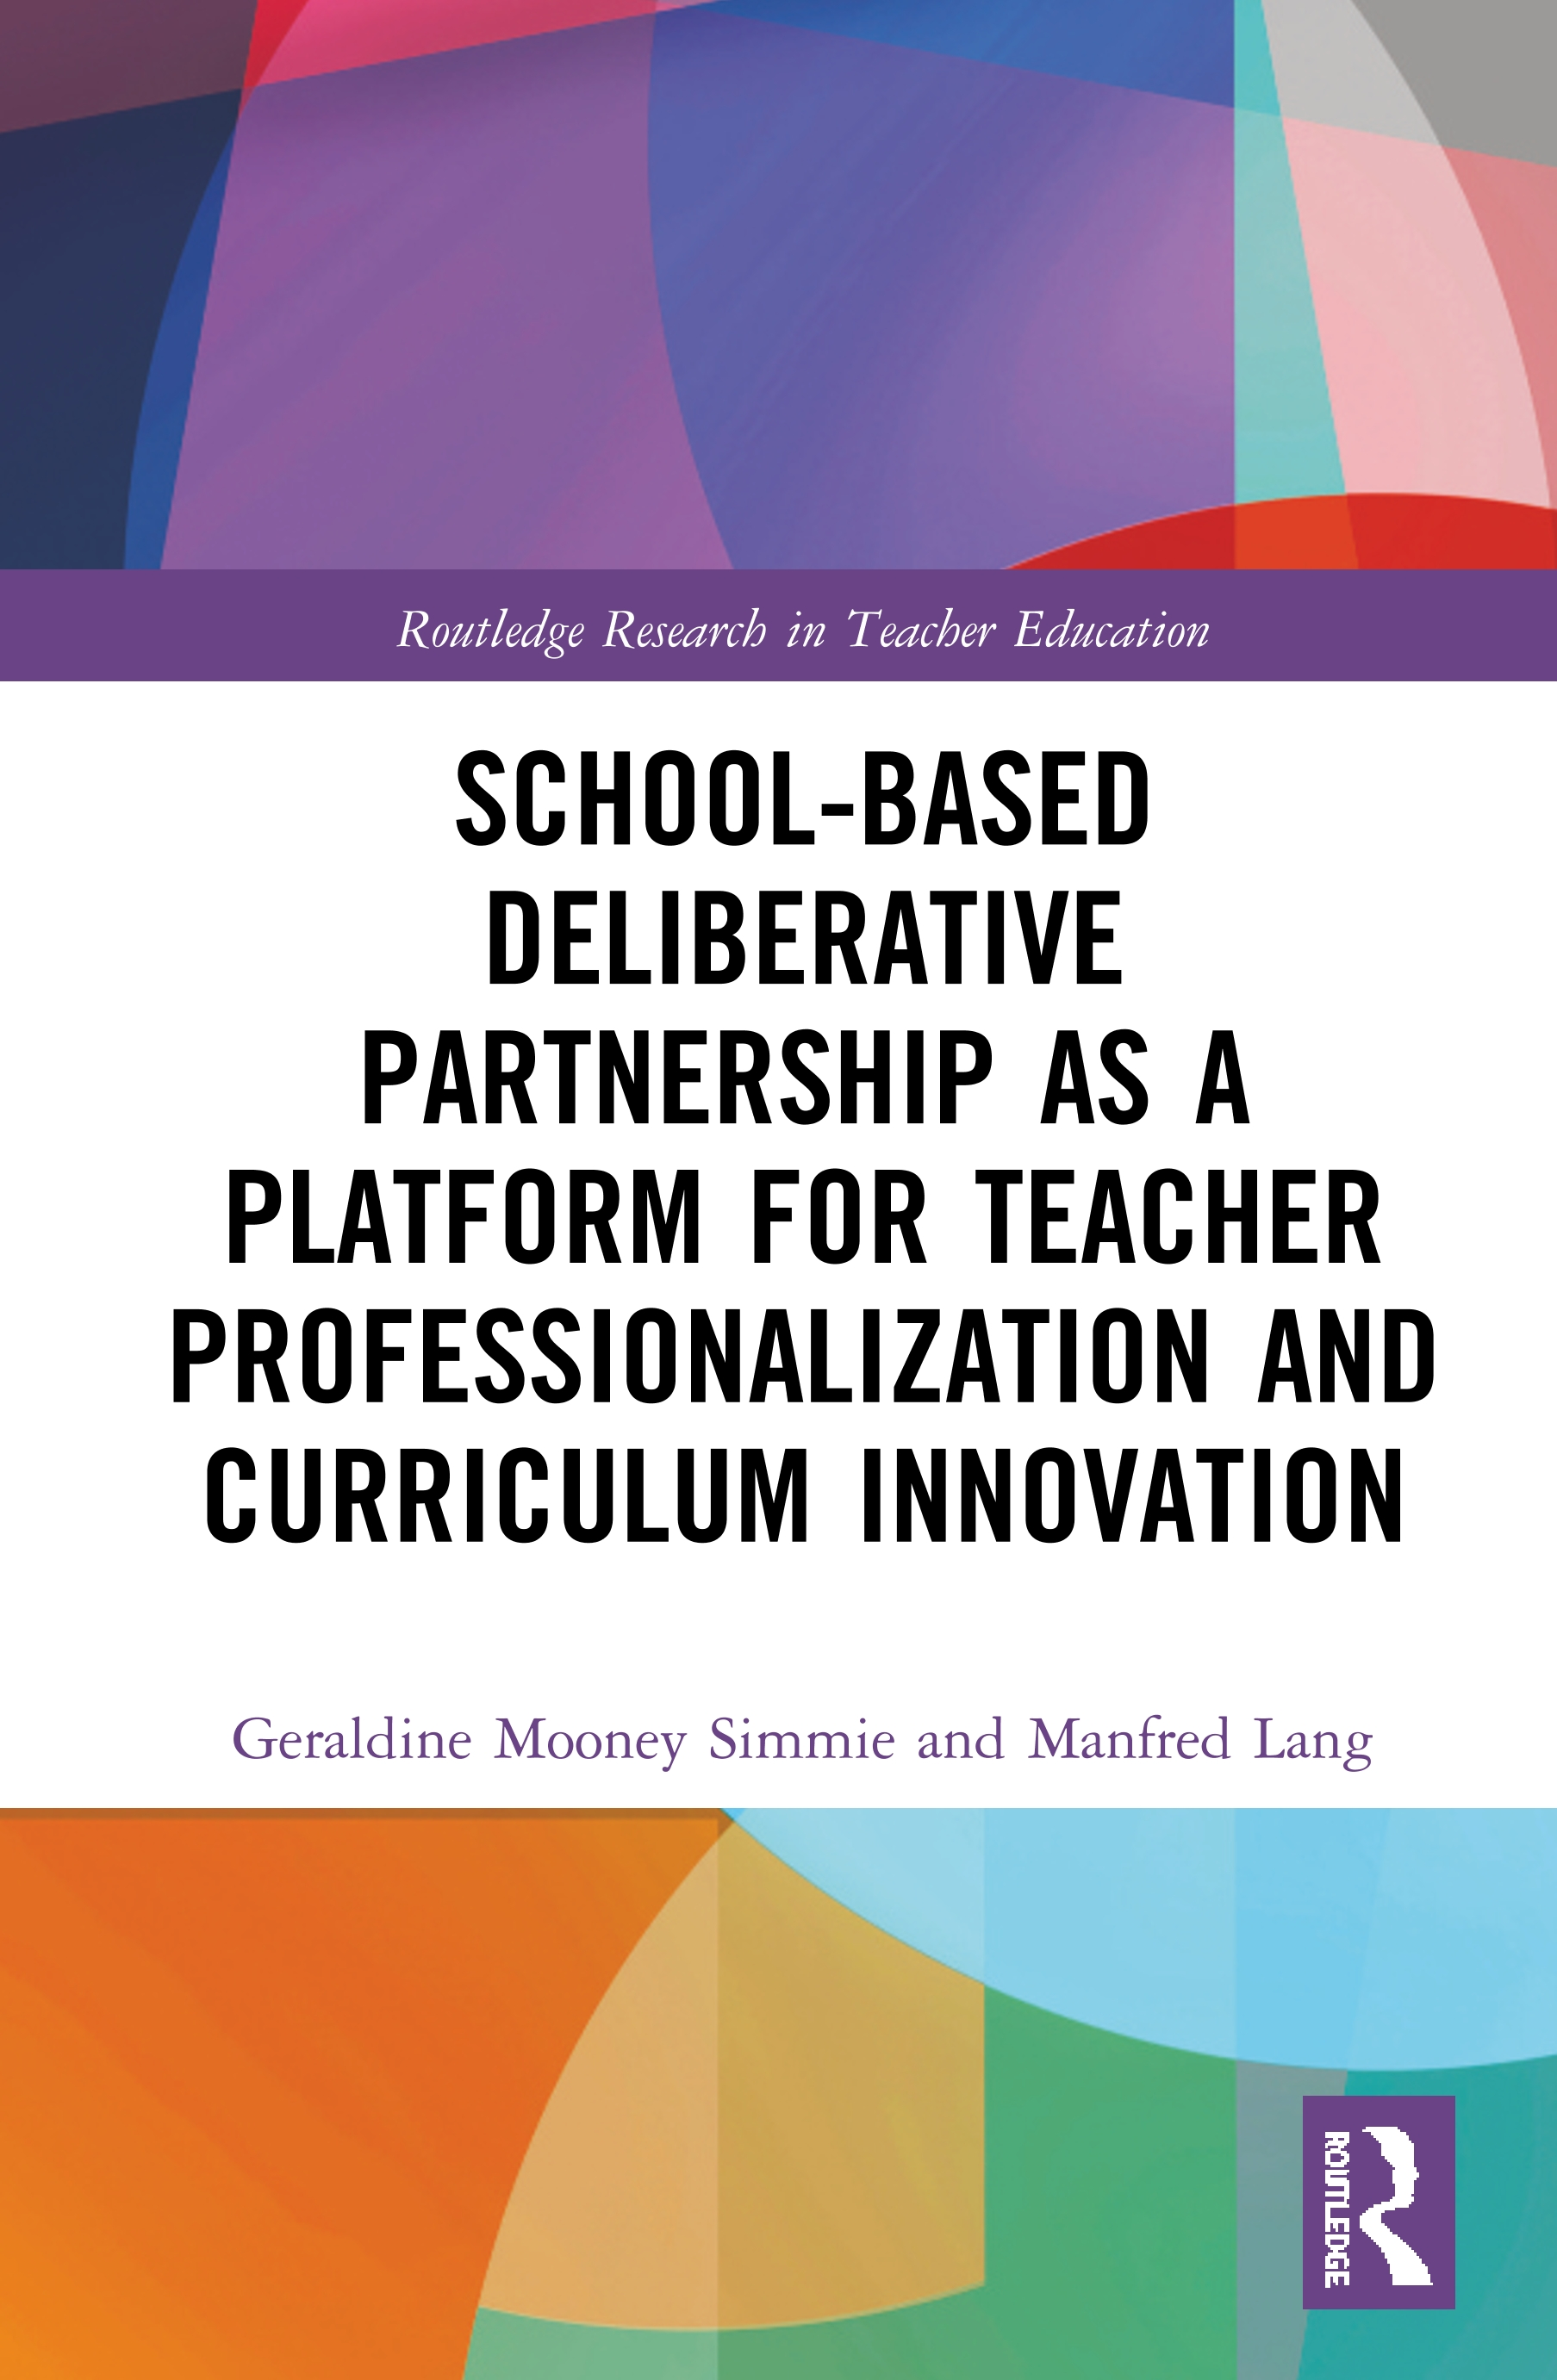 Prospects for higher-order curriculum innovation and deliberative partnership